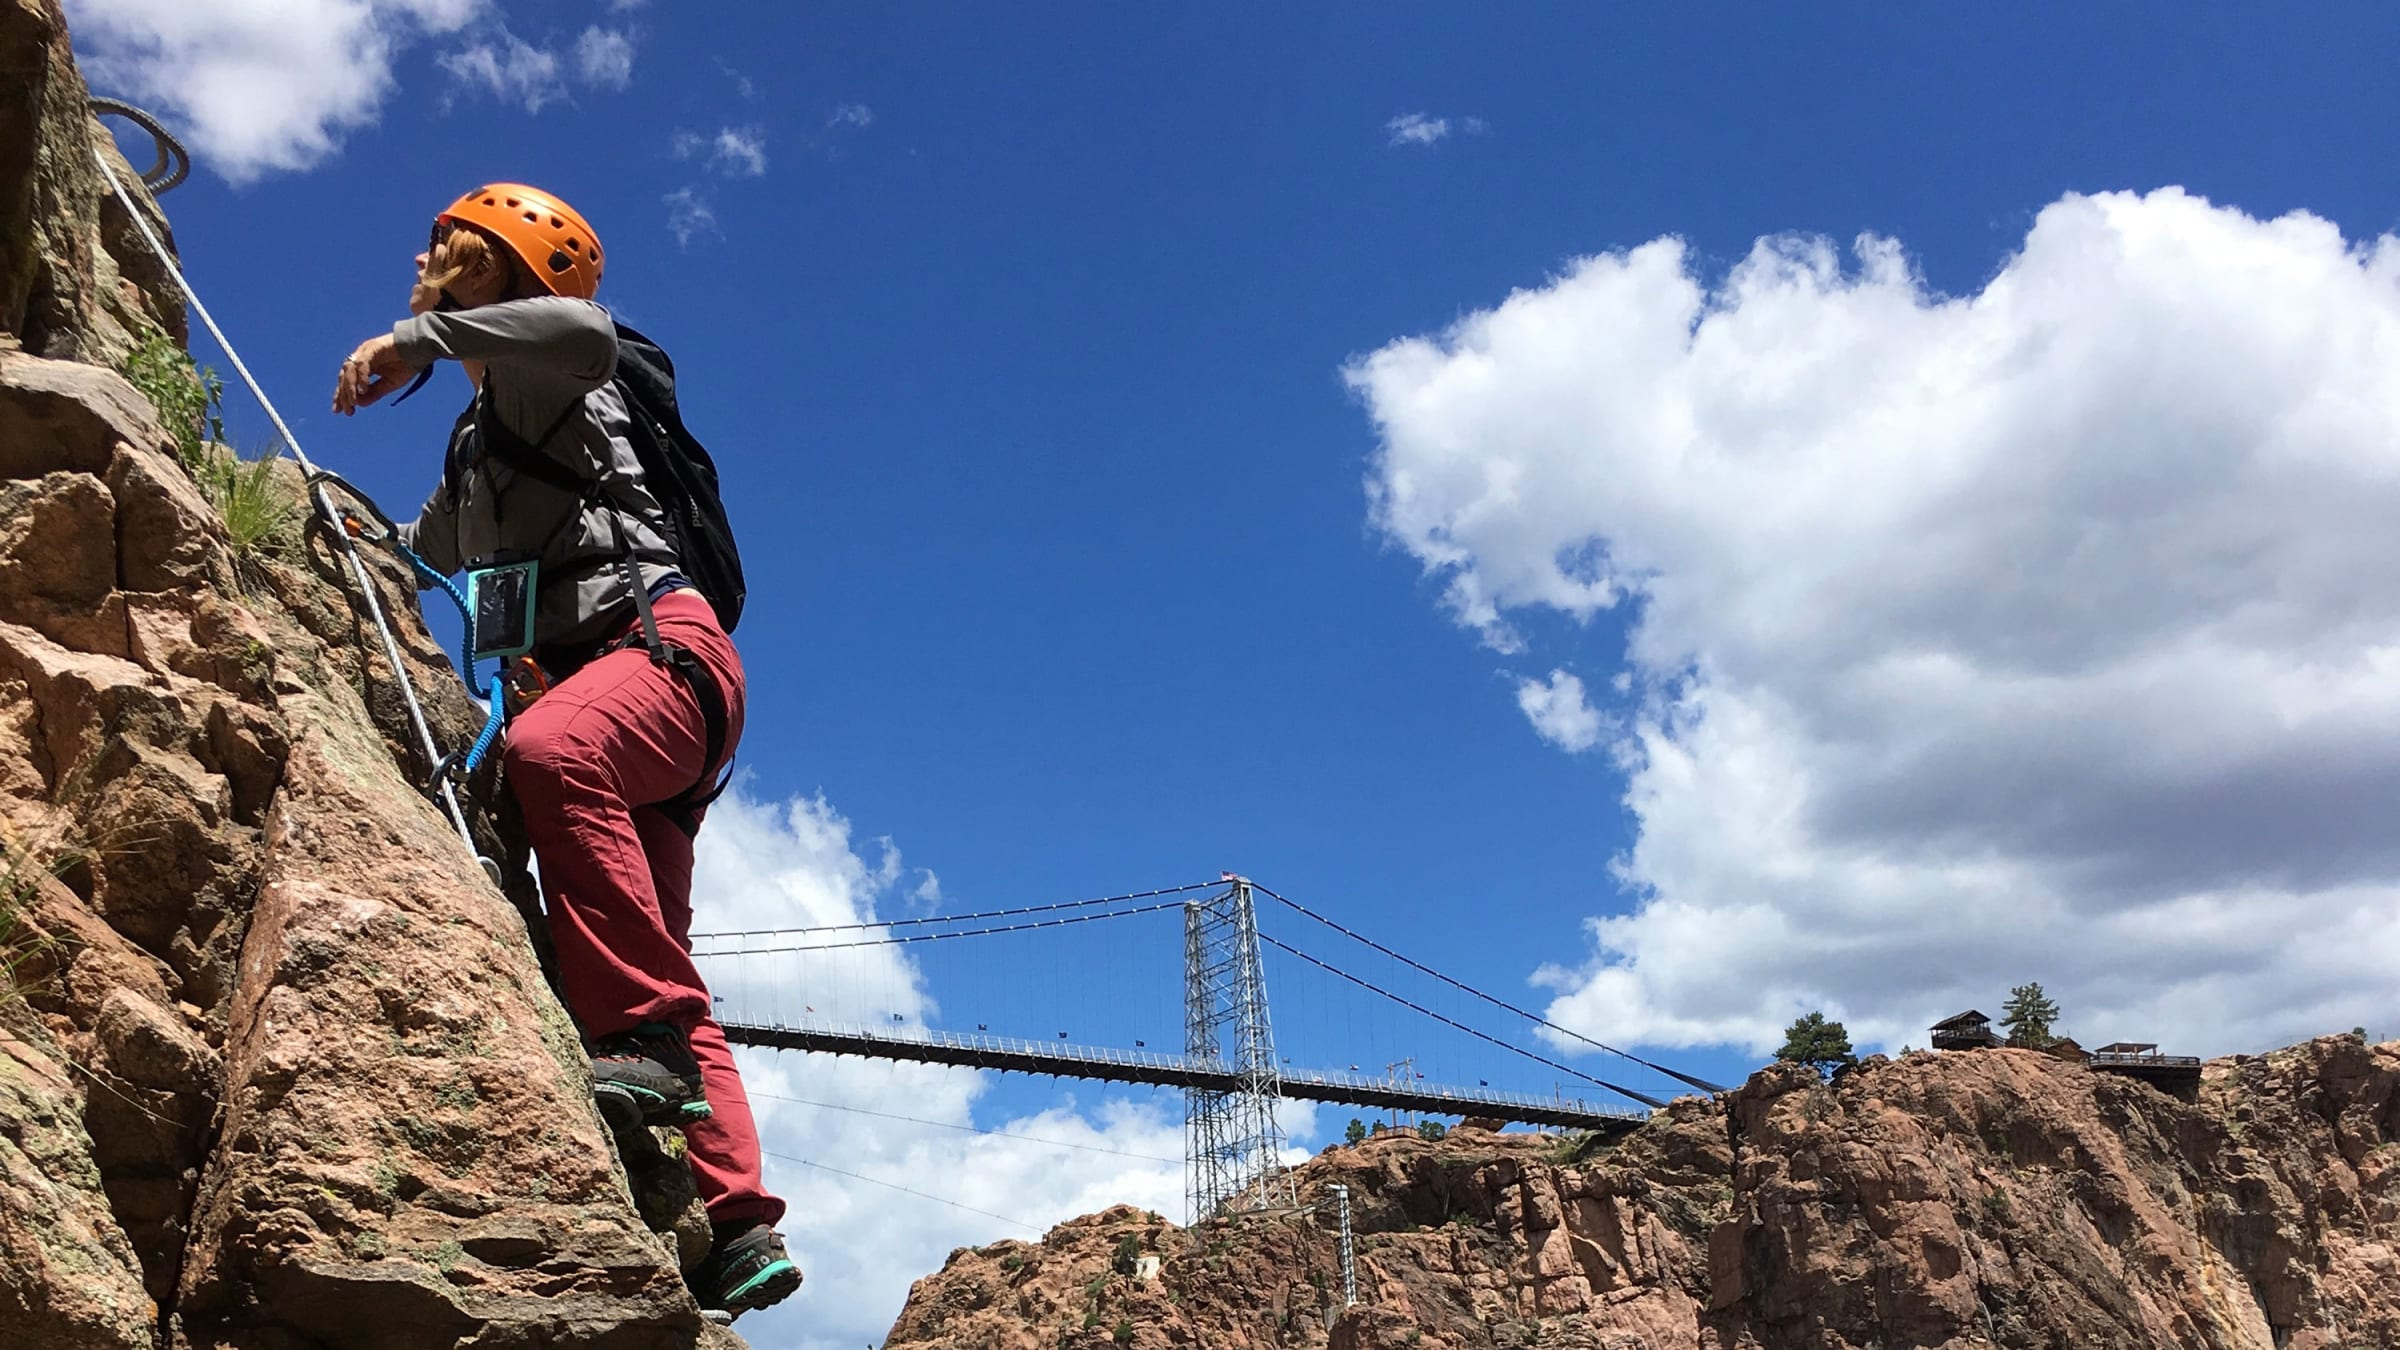 Colorado's Royal Gorge Via Ferrata: You Don't Have to be Alex Honnold to Brave This Adventure Trend